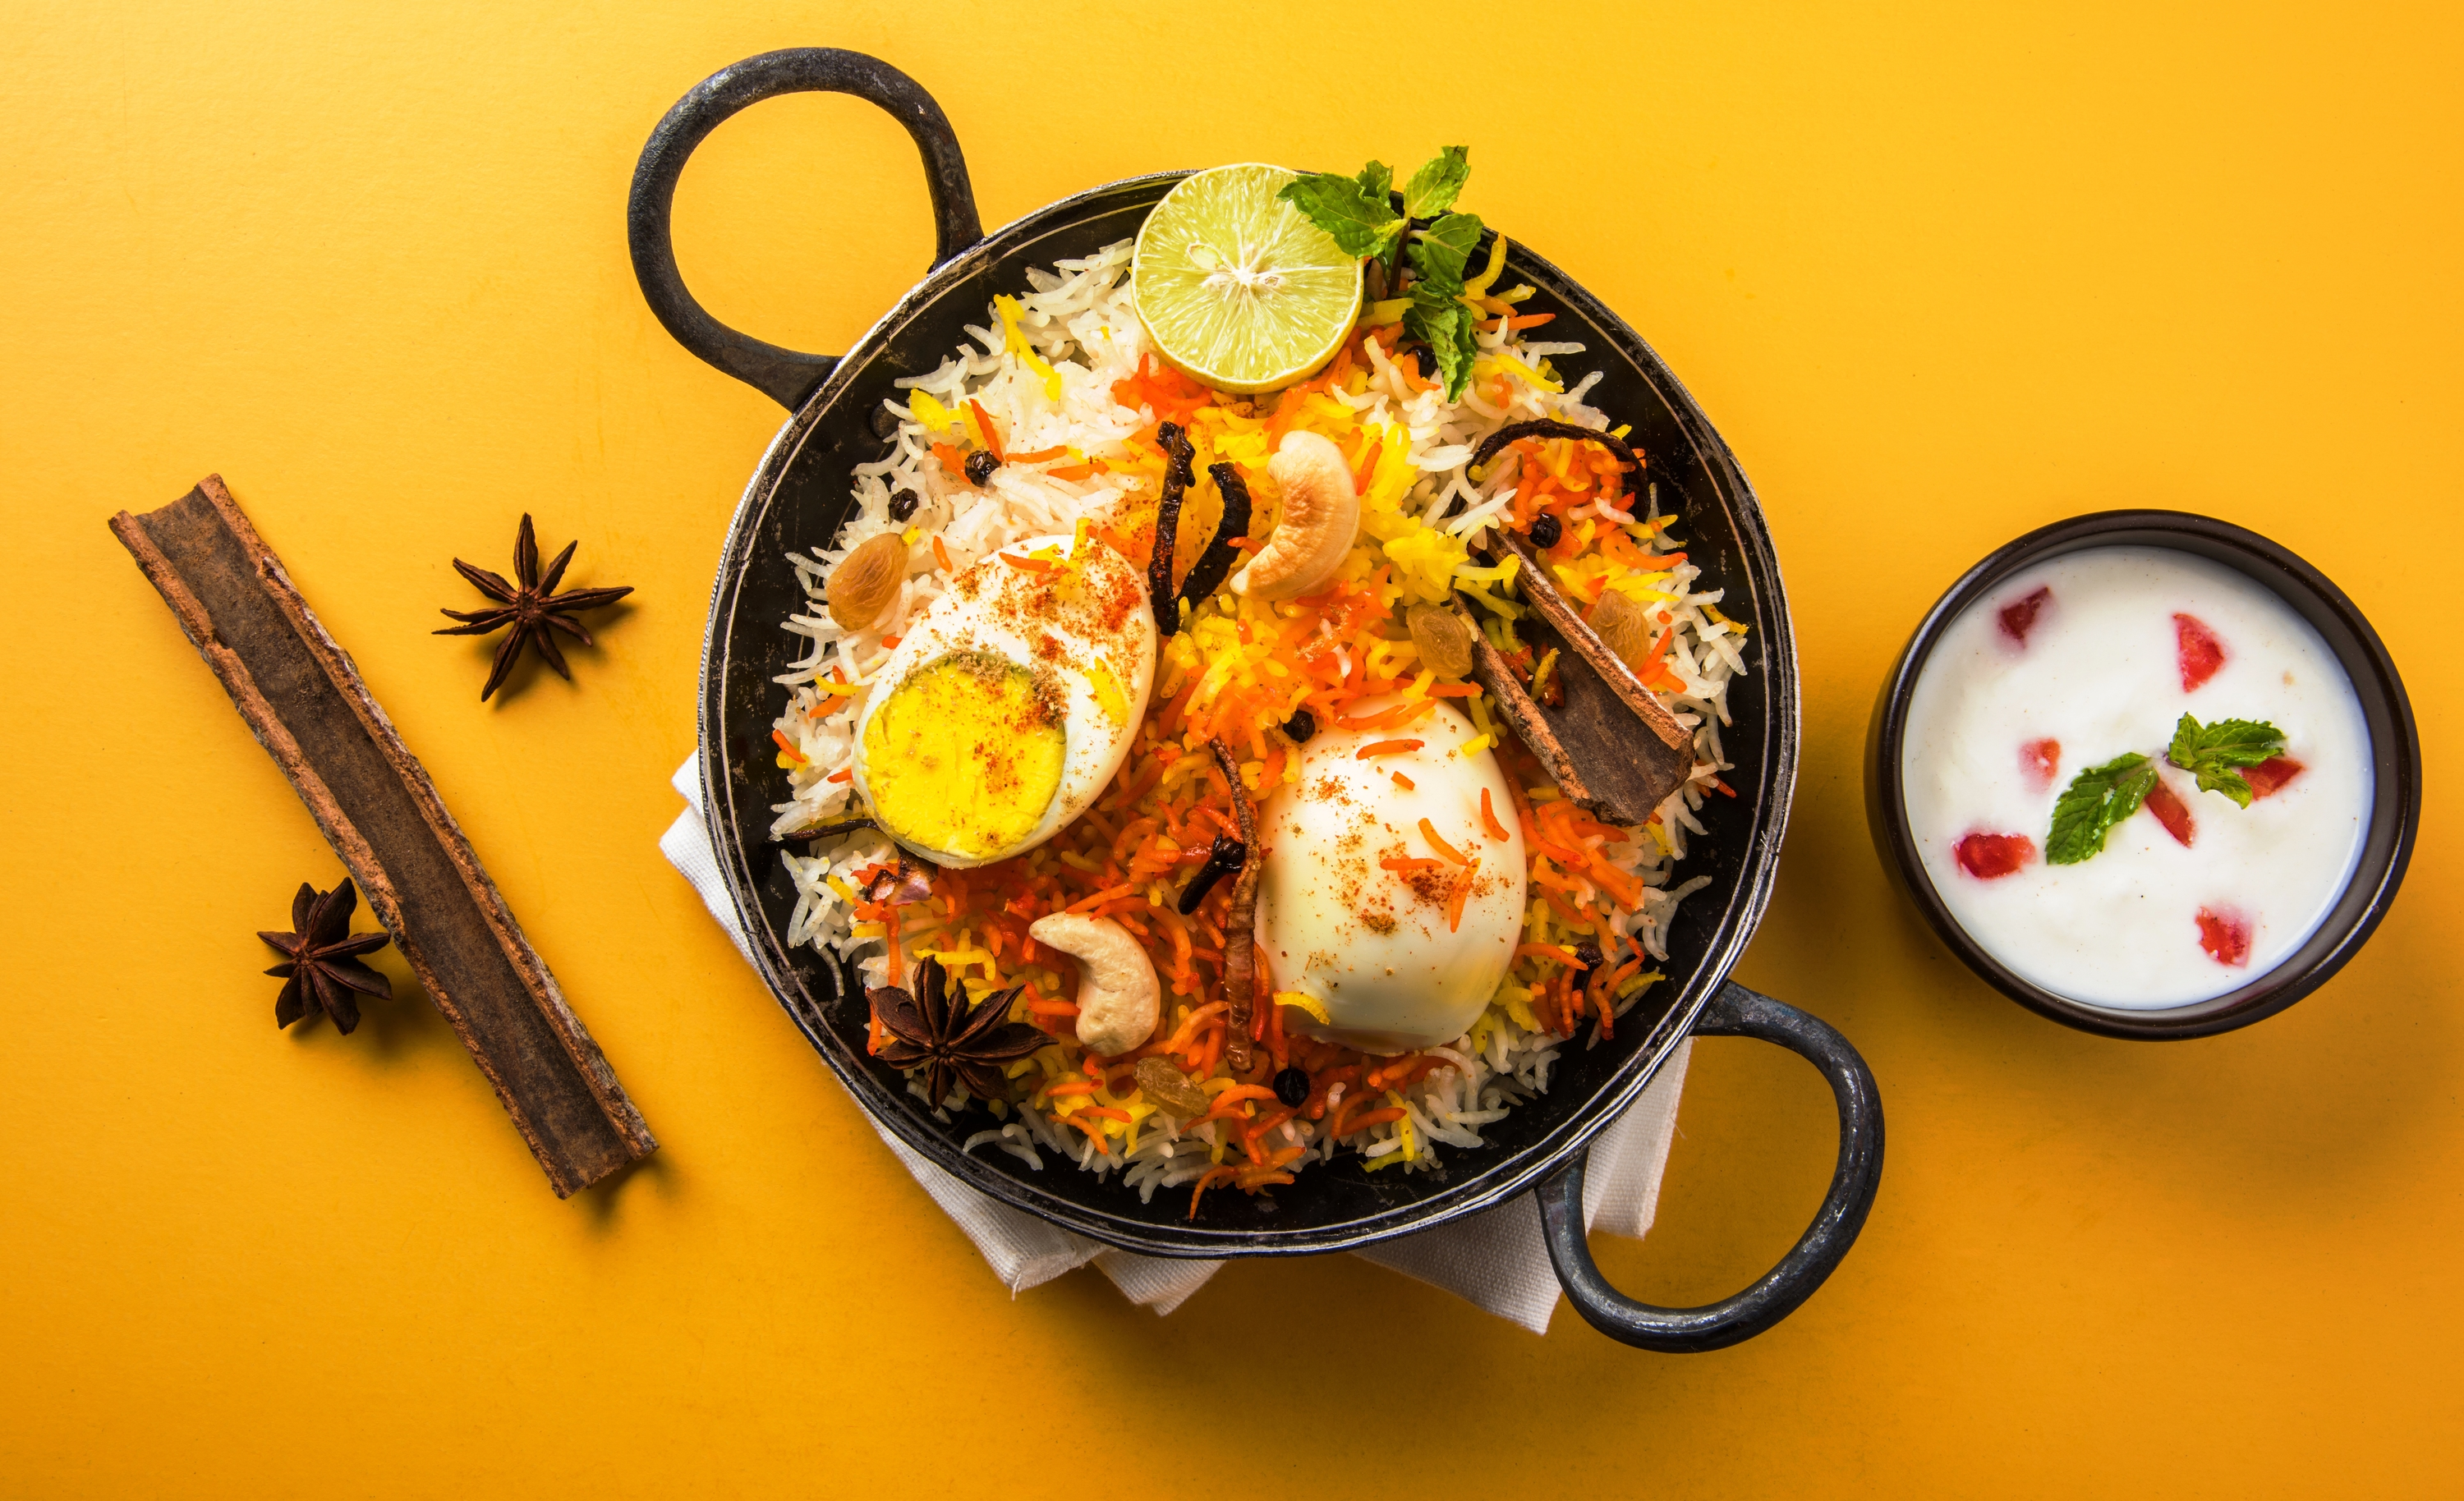 The best restaurants in Tel Aviv serving Indian dishes